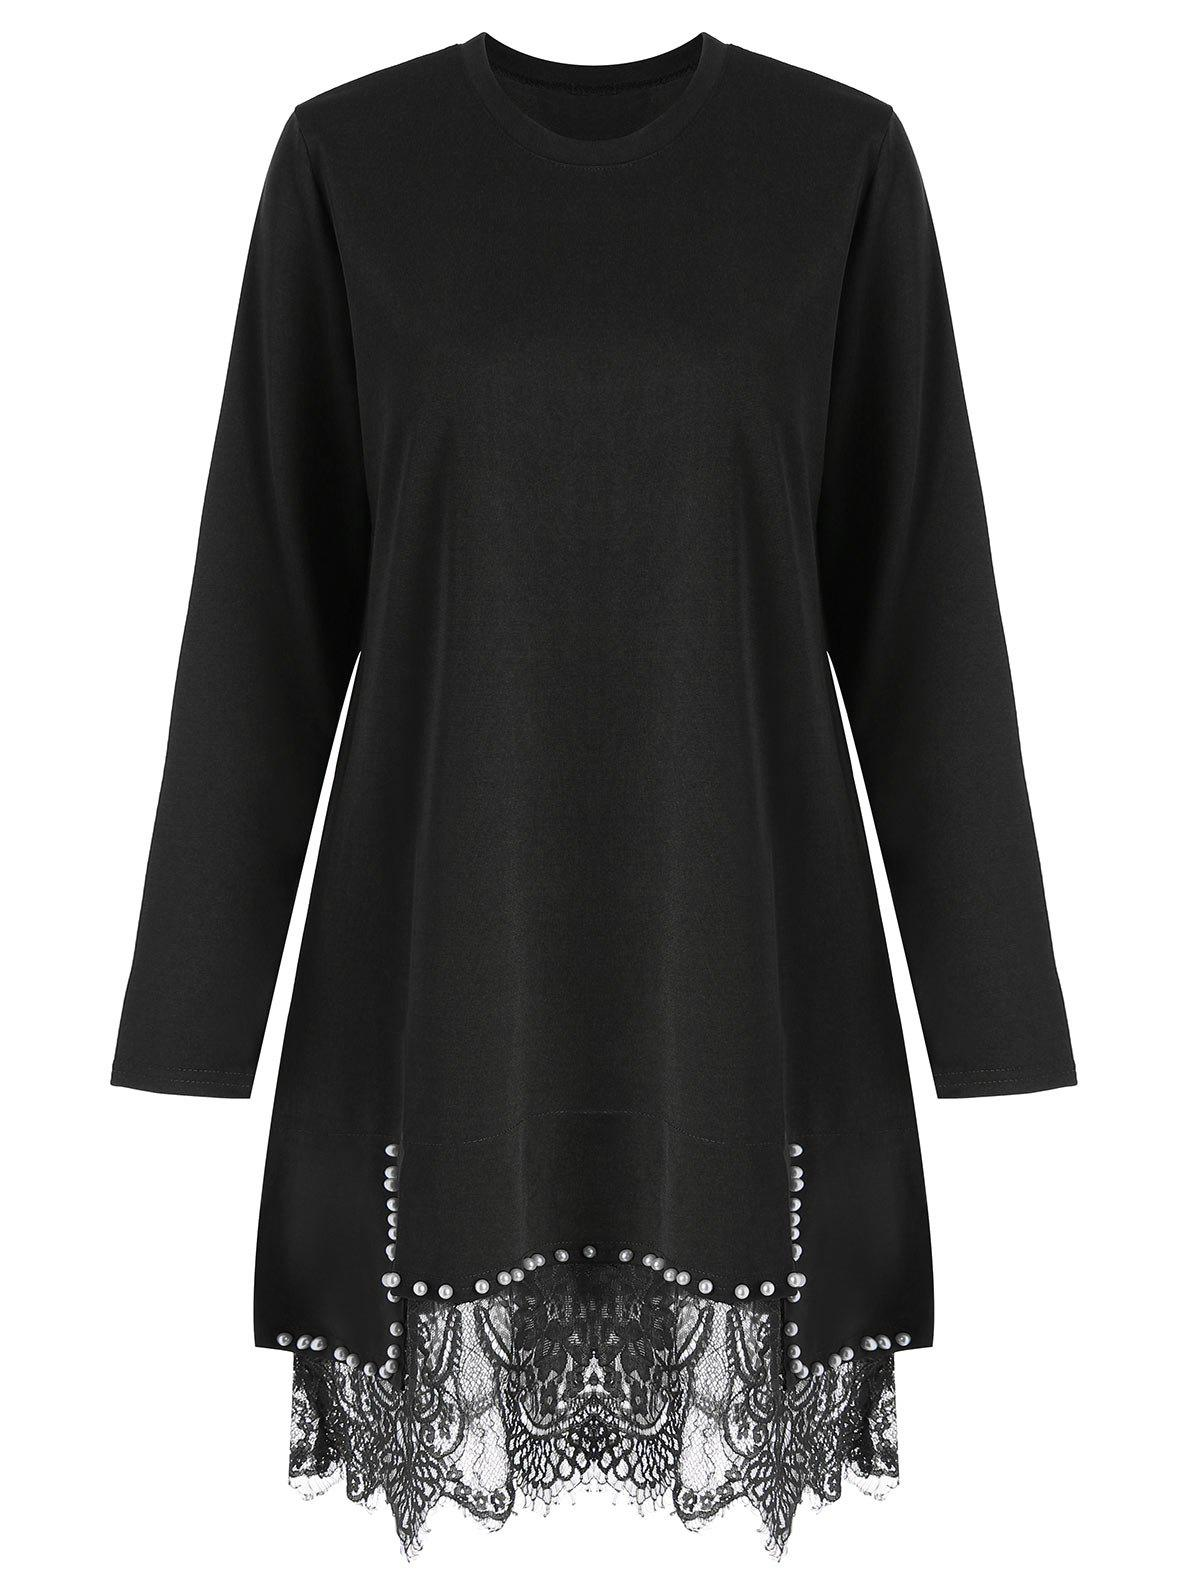 Plus Size Lace Trim Faux Pearl Tunic DressWOMEN<br><br>Size: 5XL; Color: BLACK; Style: Casual; Material: Cotton,Polyester; Silhouette: Sheath; Dresses Length: Knee-Length; Neckline: Round Collar; Sleeve Length: Long Sleeves; Embellishment: Lace,Pearls; Pattern Type: Solid; With Belt: No; Season: Fall; Weight: 0.4200kg; Package Contents: 1 x Dress;